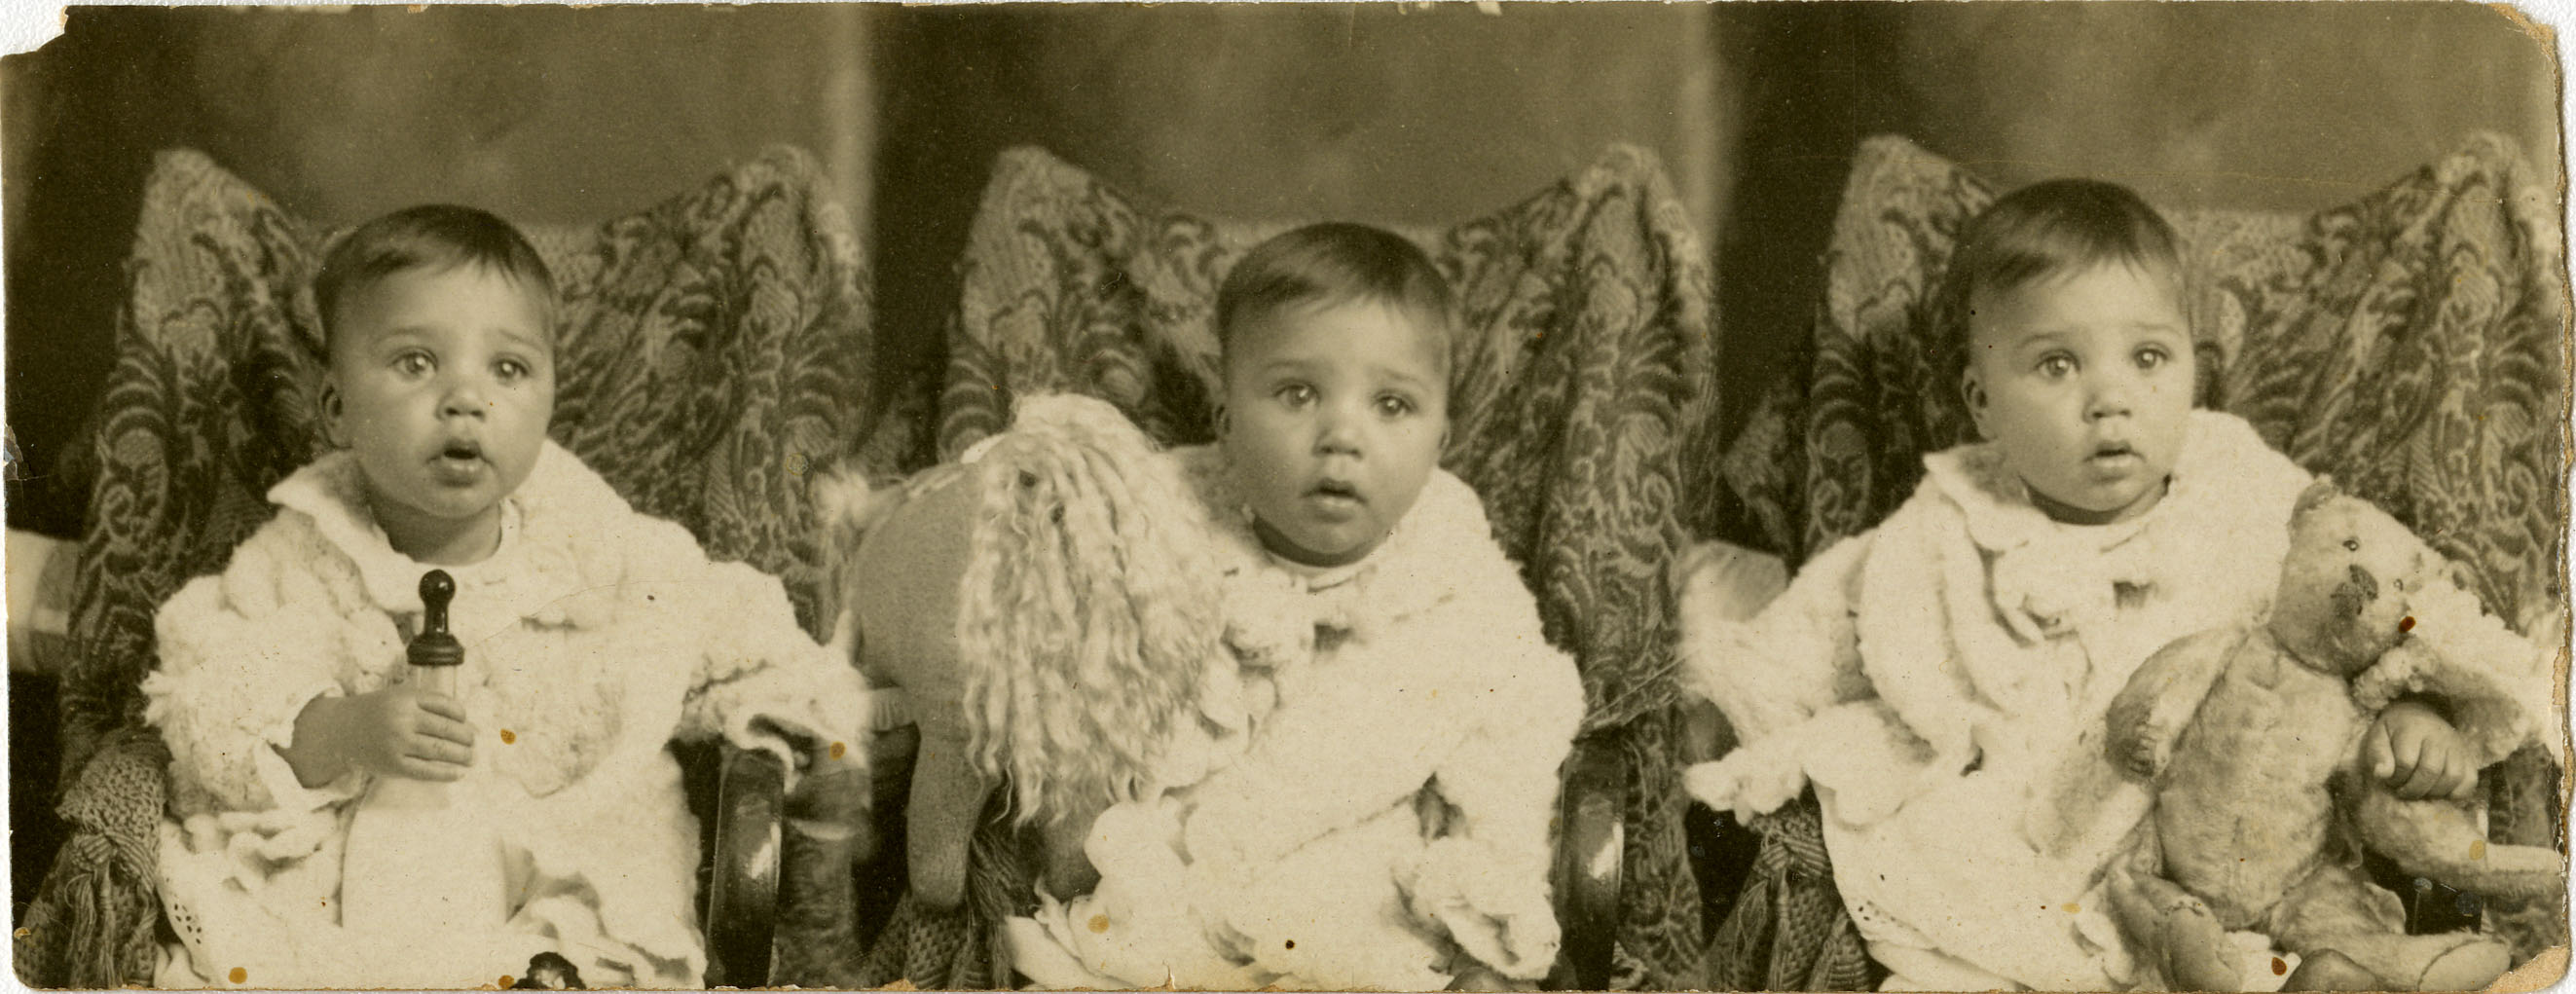 Composite photograph of infant